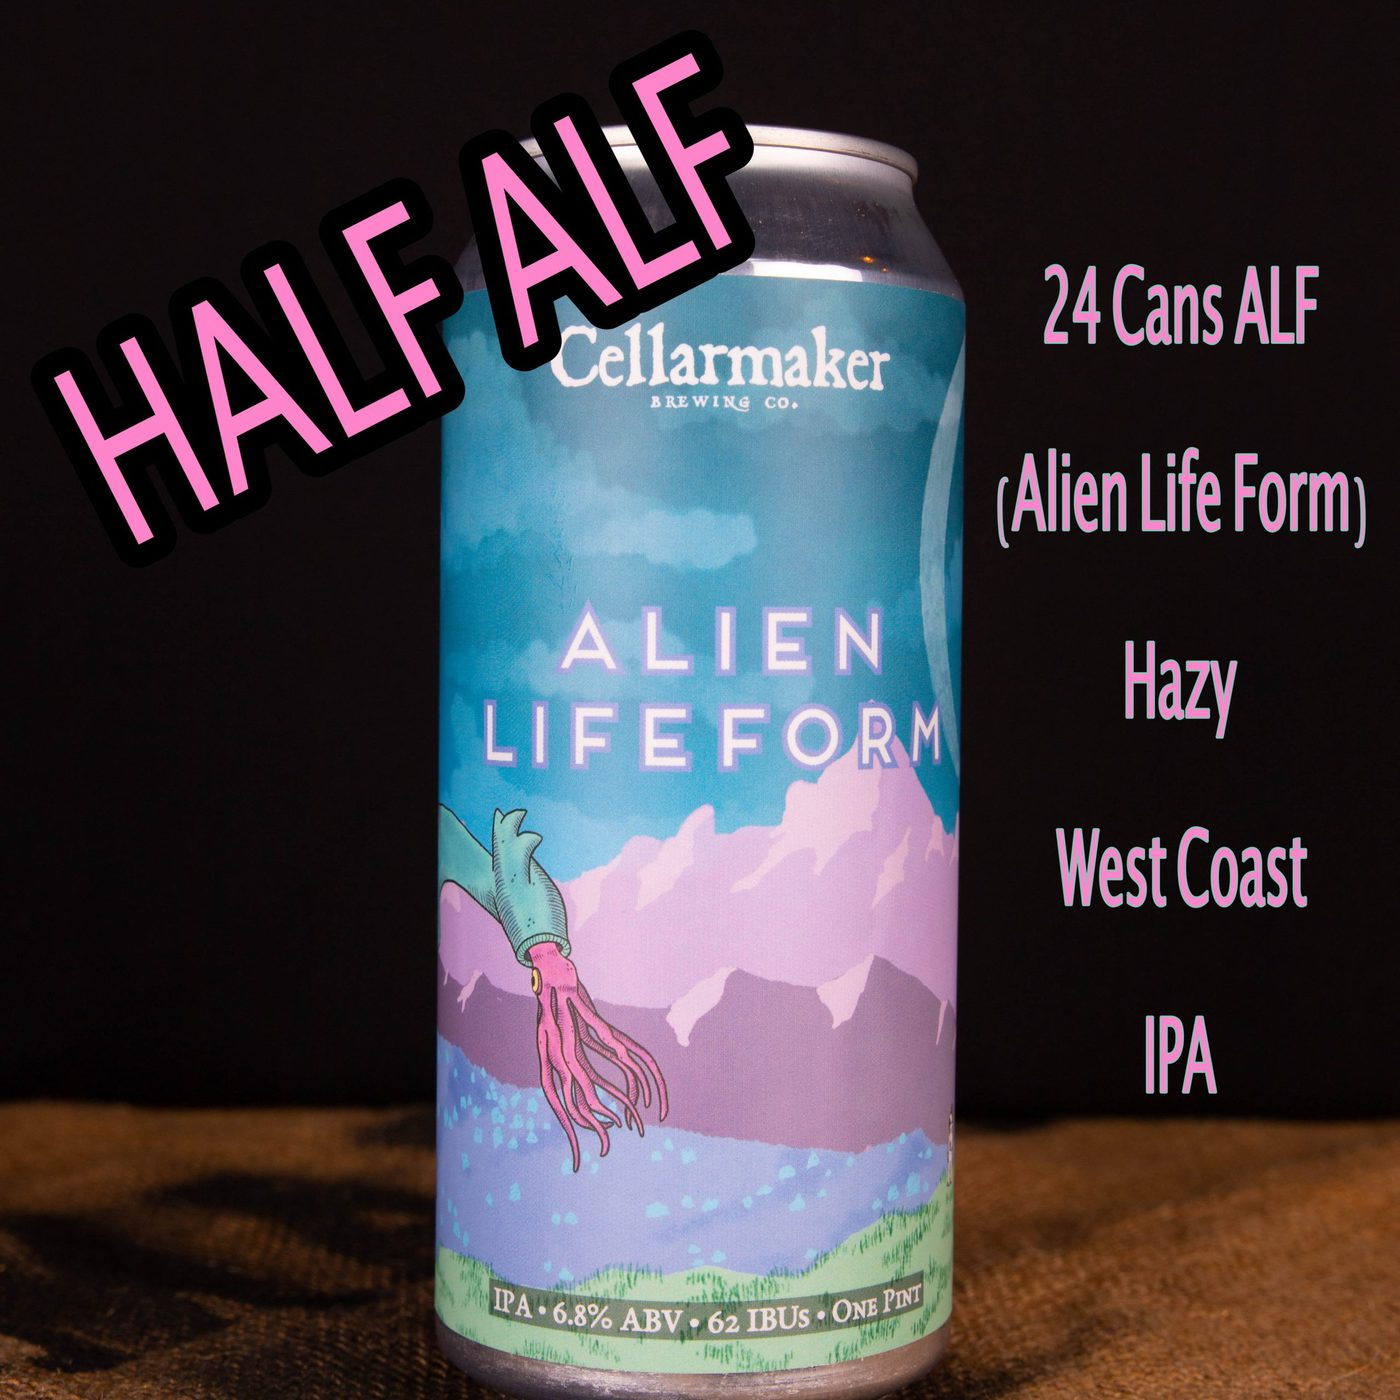 HALF CASE 12 CANS Of ALF IPA  … SHIPPING Out On TUESDAY 1/12 For NEXT DAY Delivery*